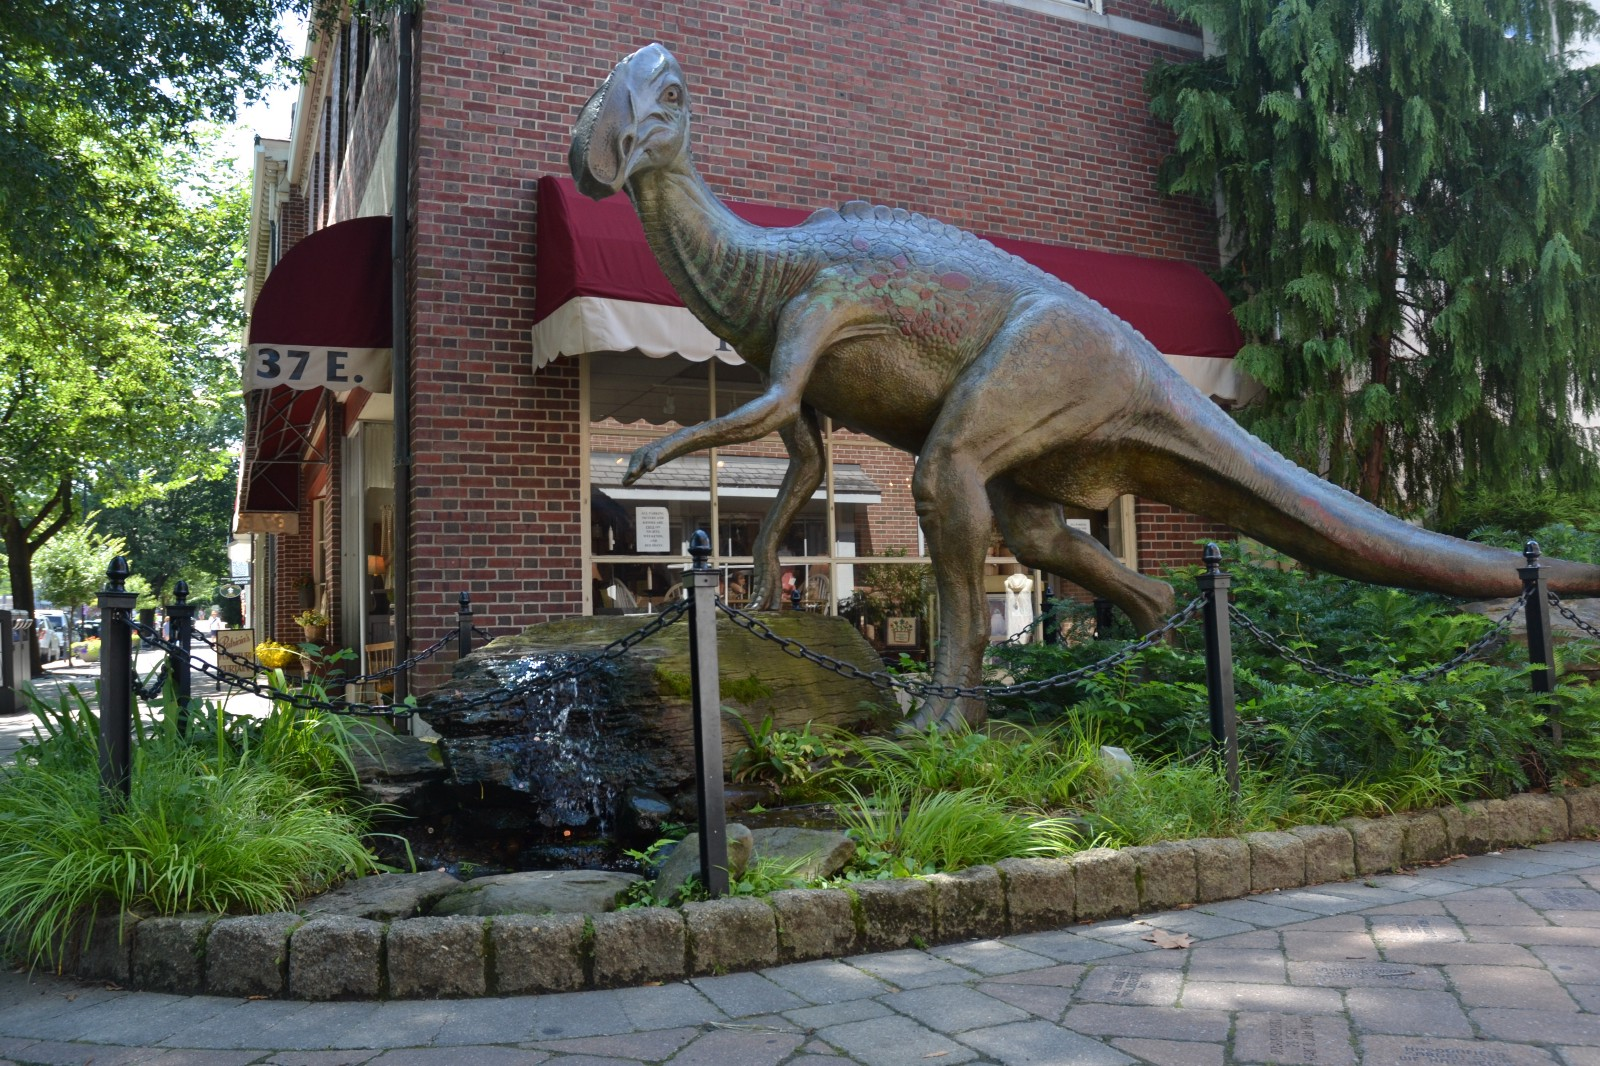 Dinosaur statue in Haddonfield